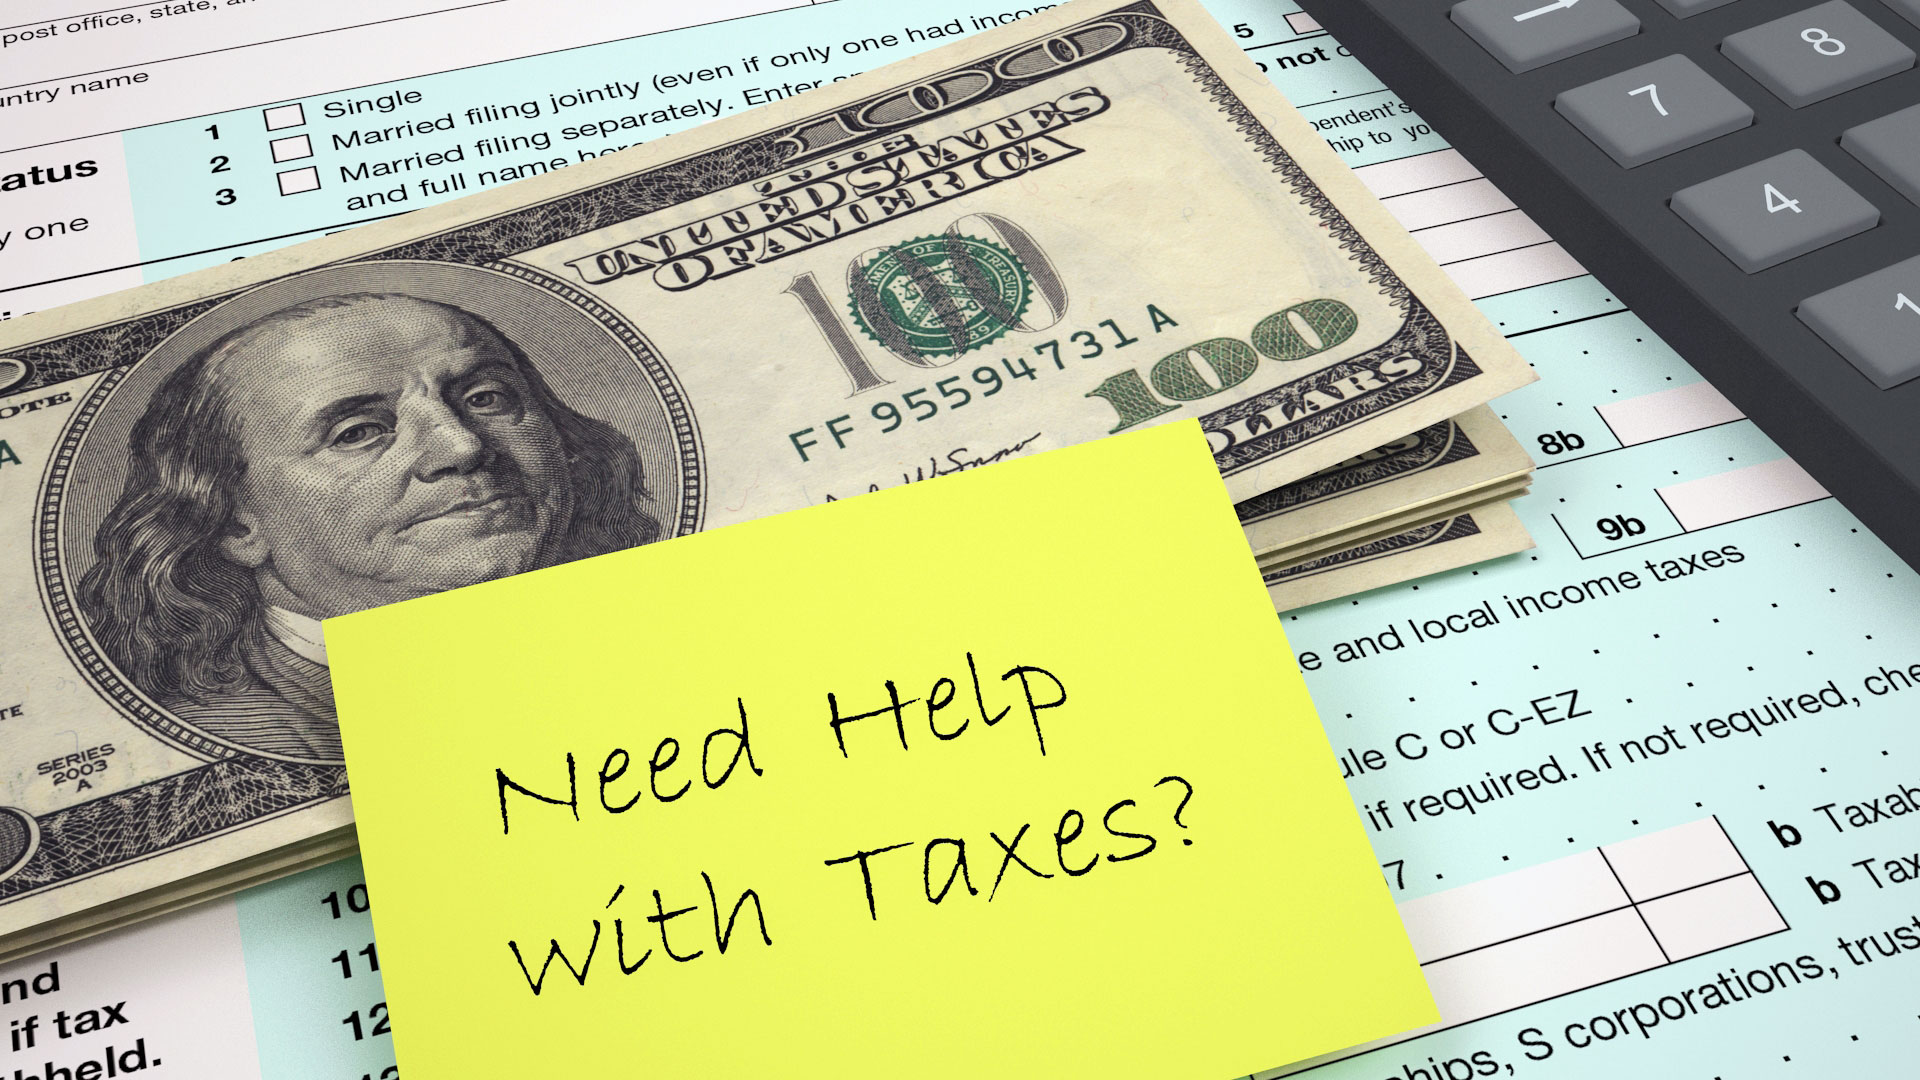 Let us Help you with the new Tax Reform!